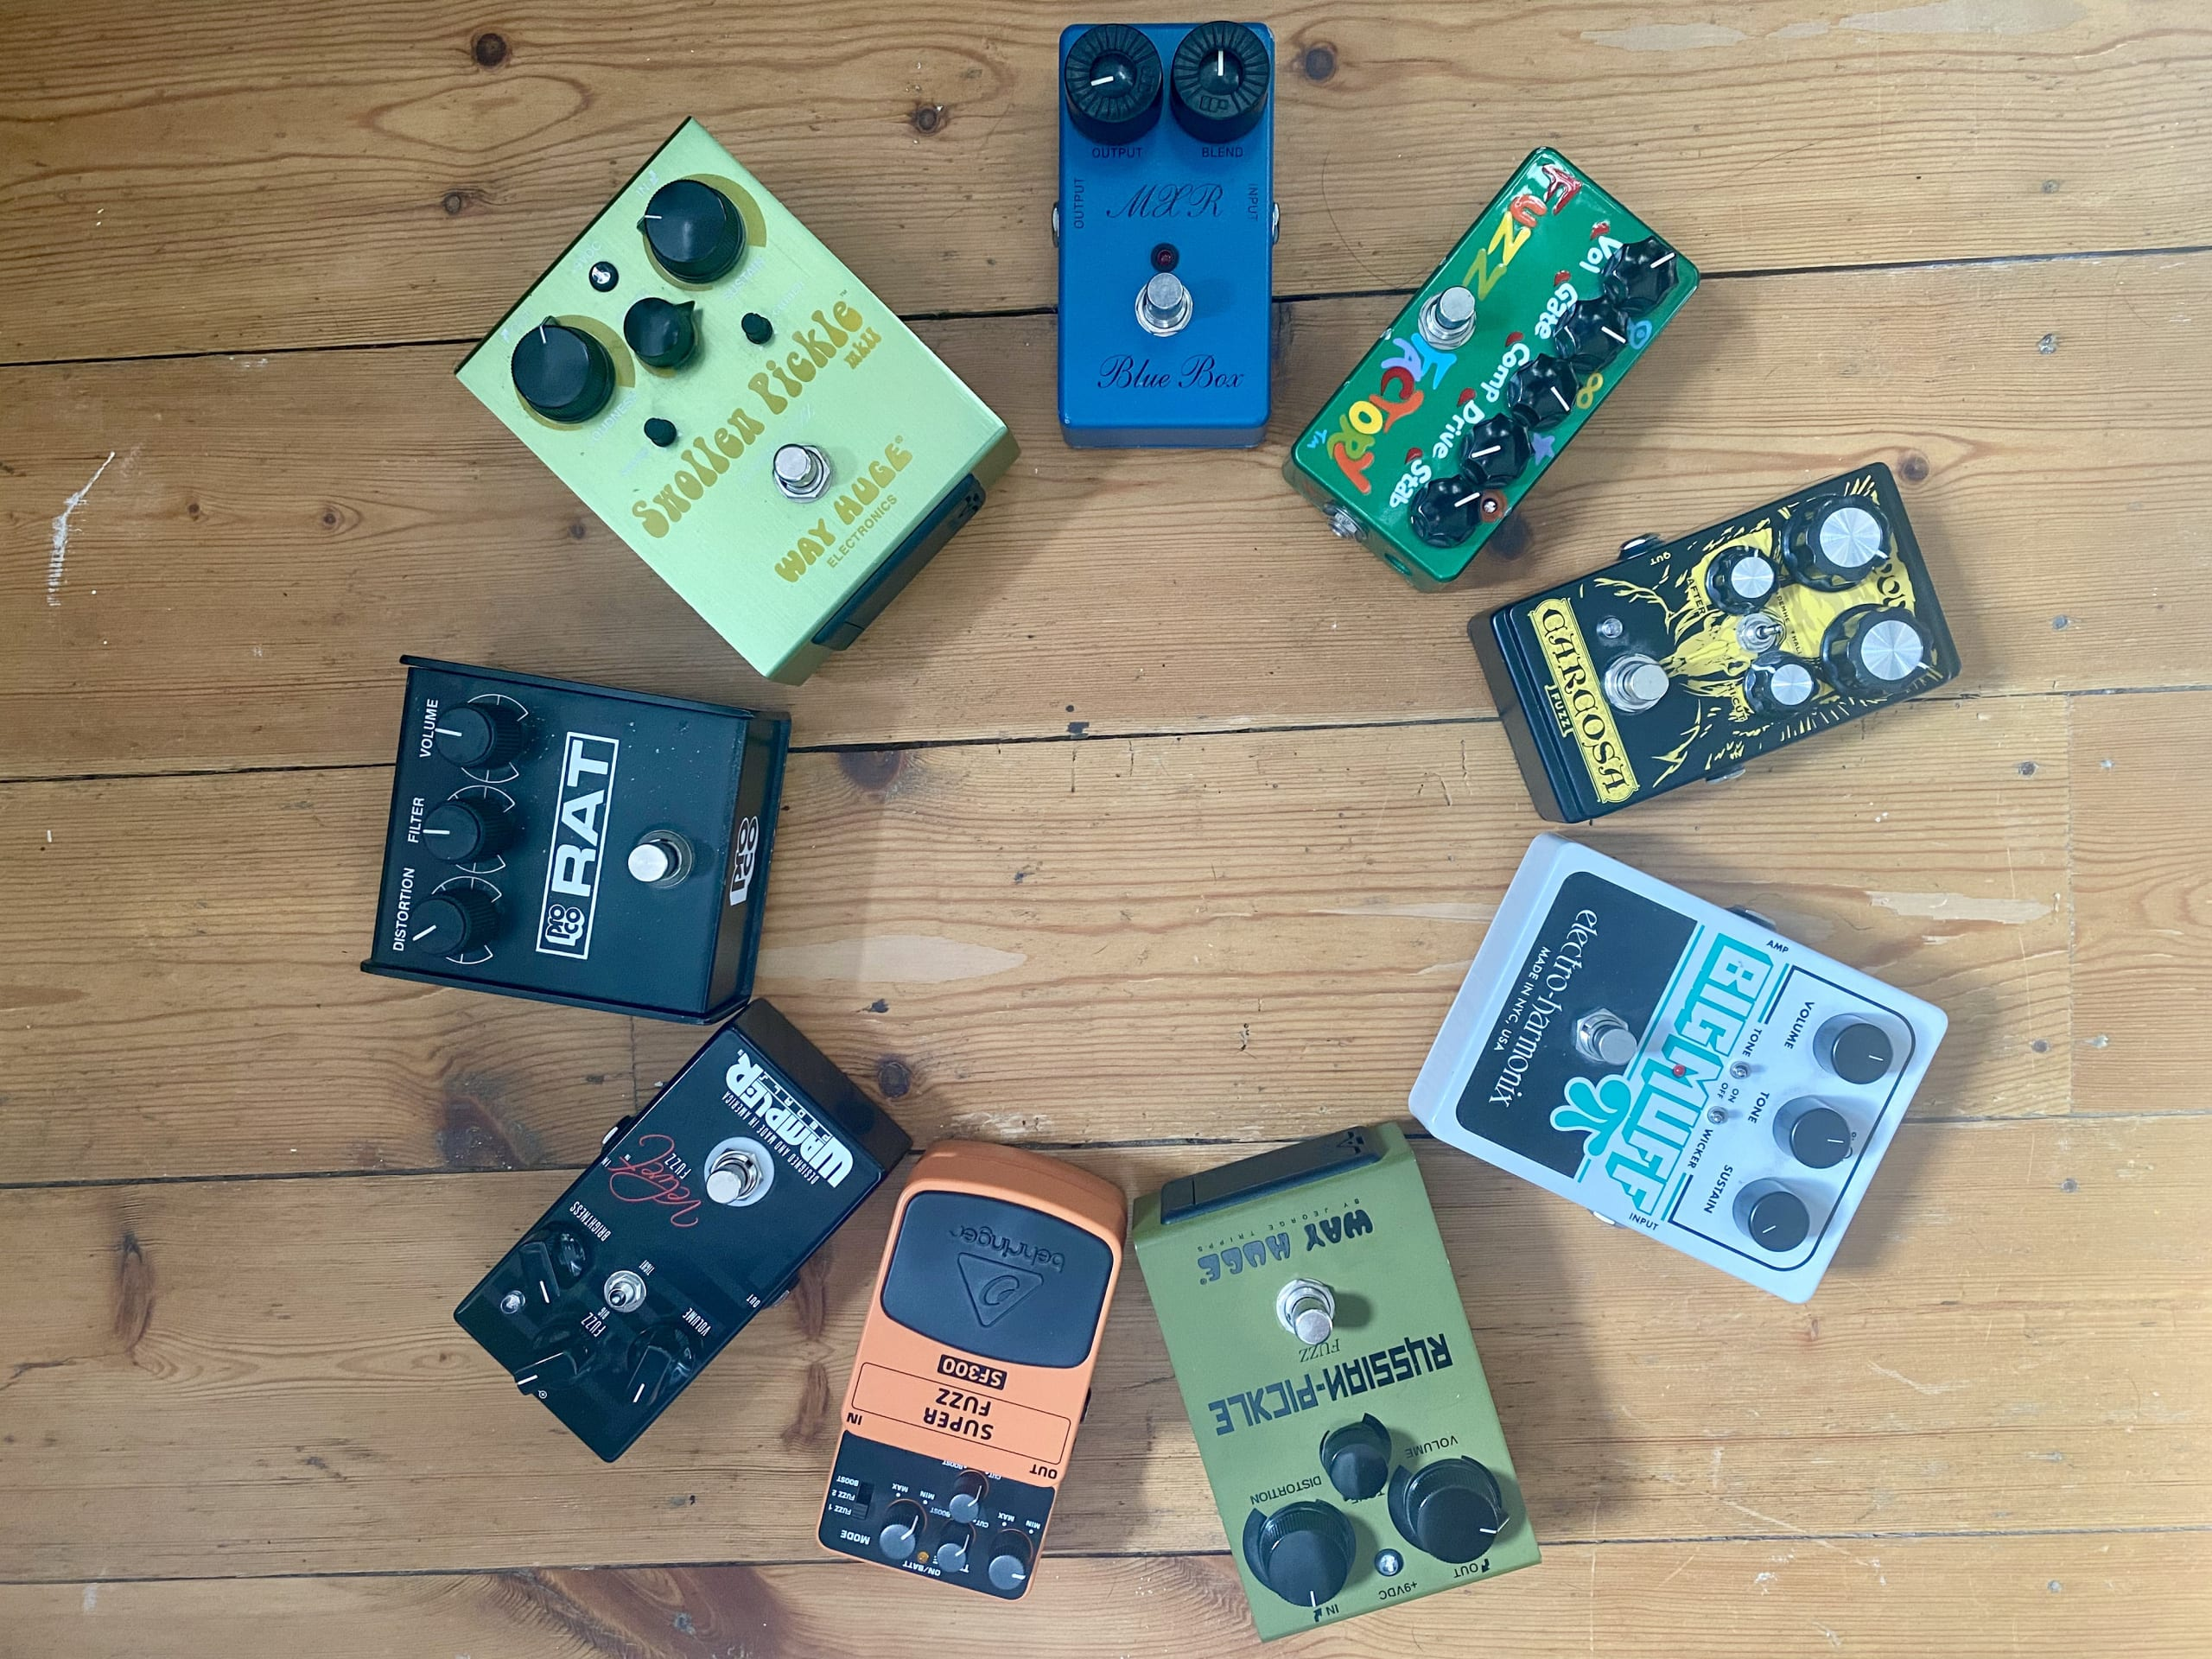 Some of my favourite fuzz boxes